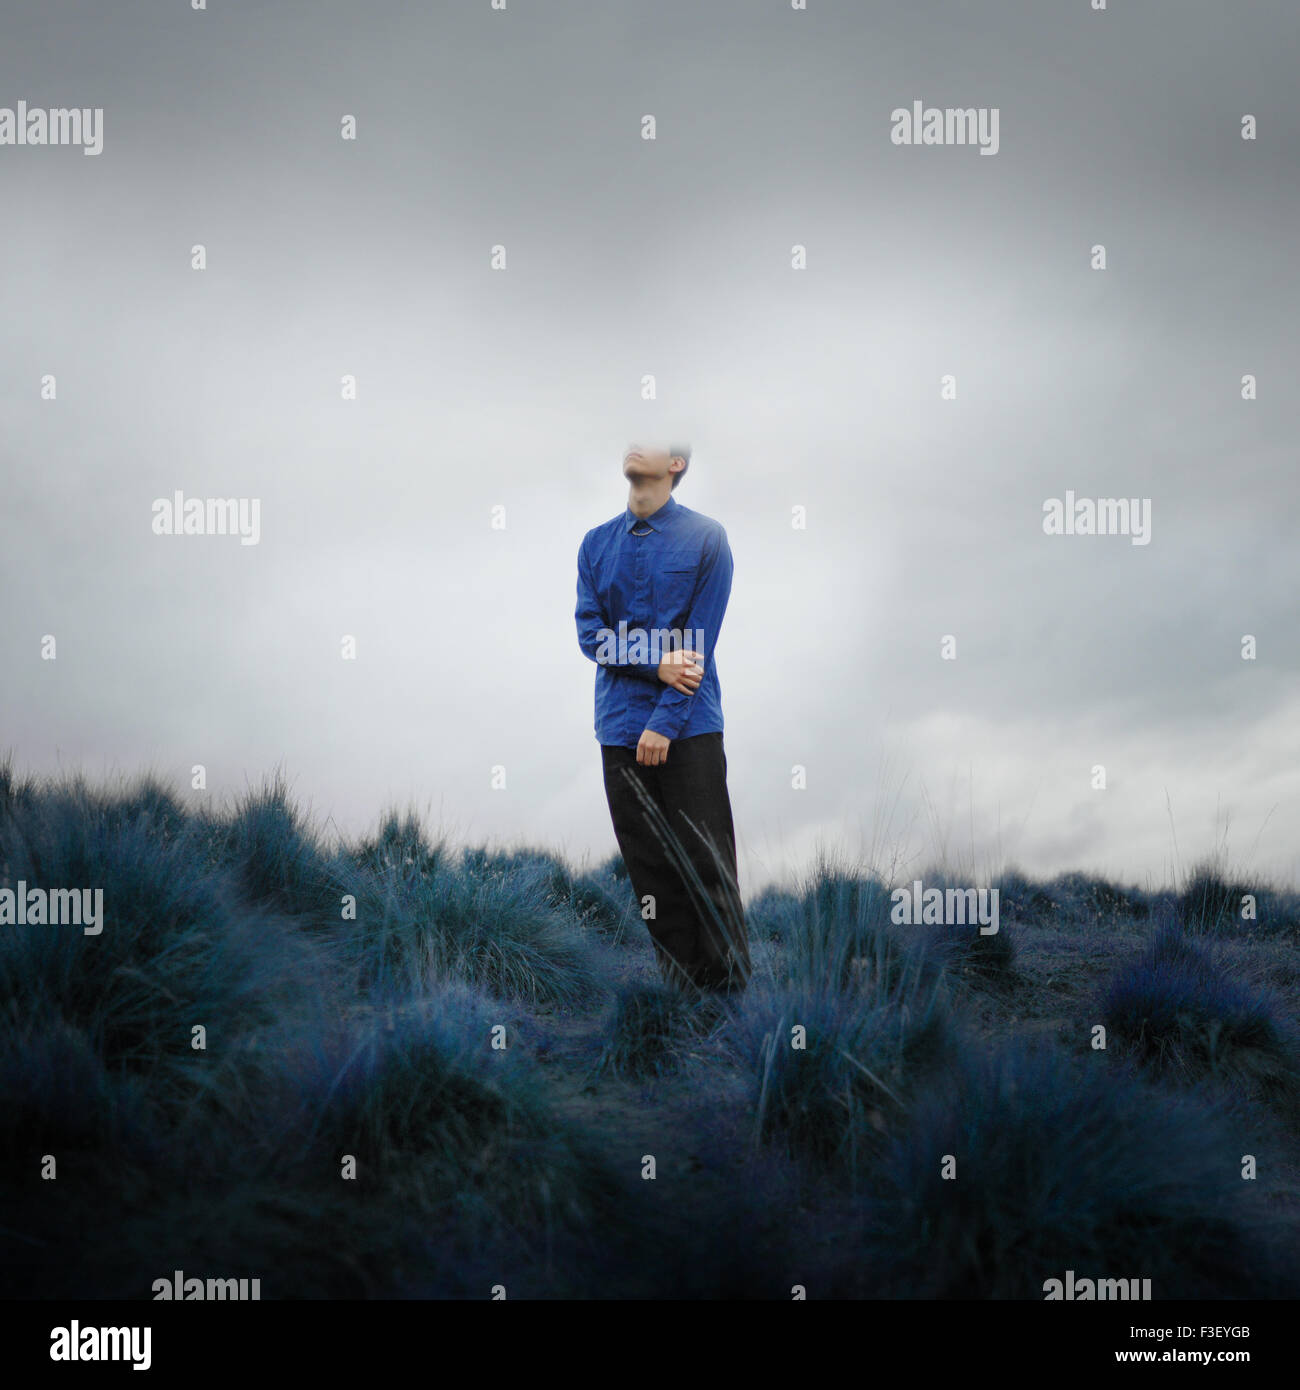 Boy blue shirt with the head in the clouds cold day blue stormy sky - Stock Image